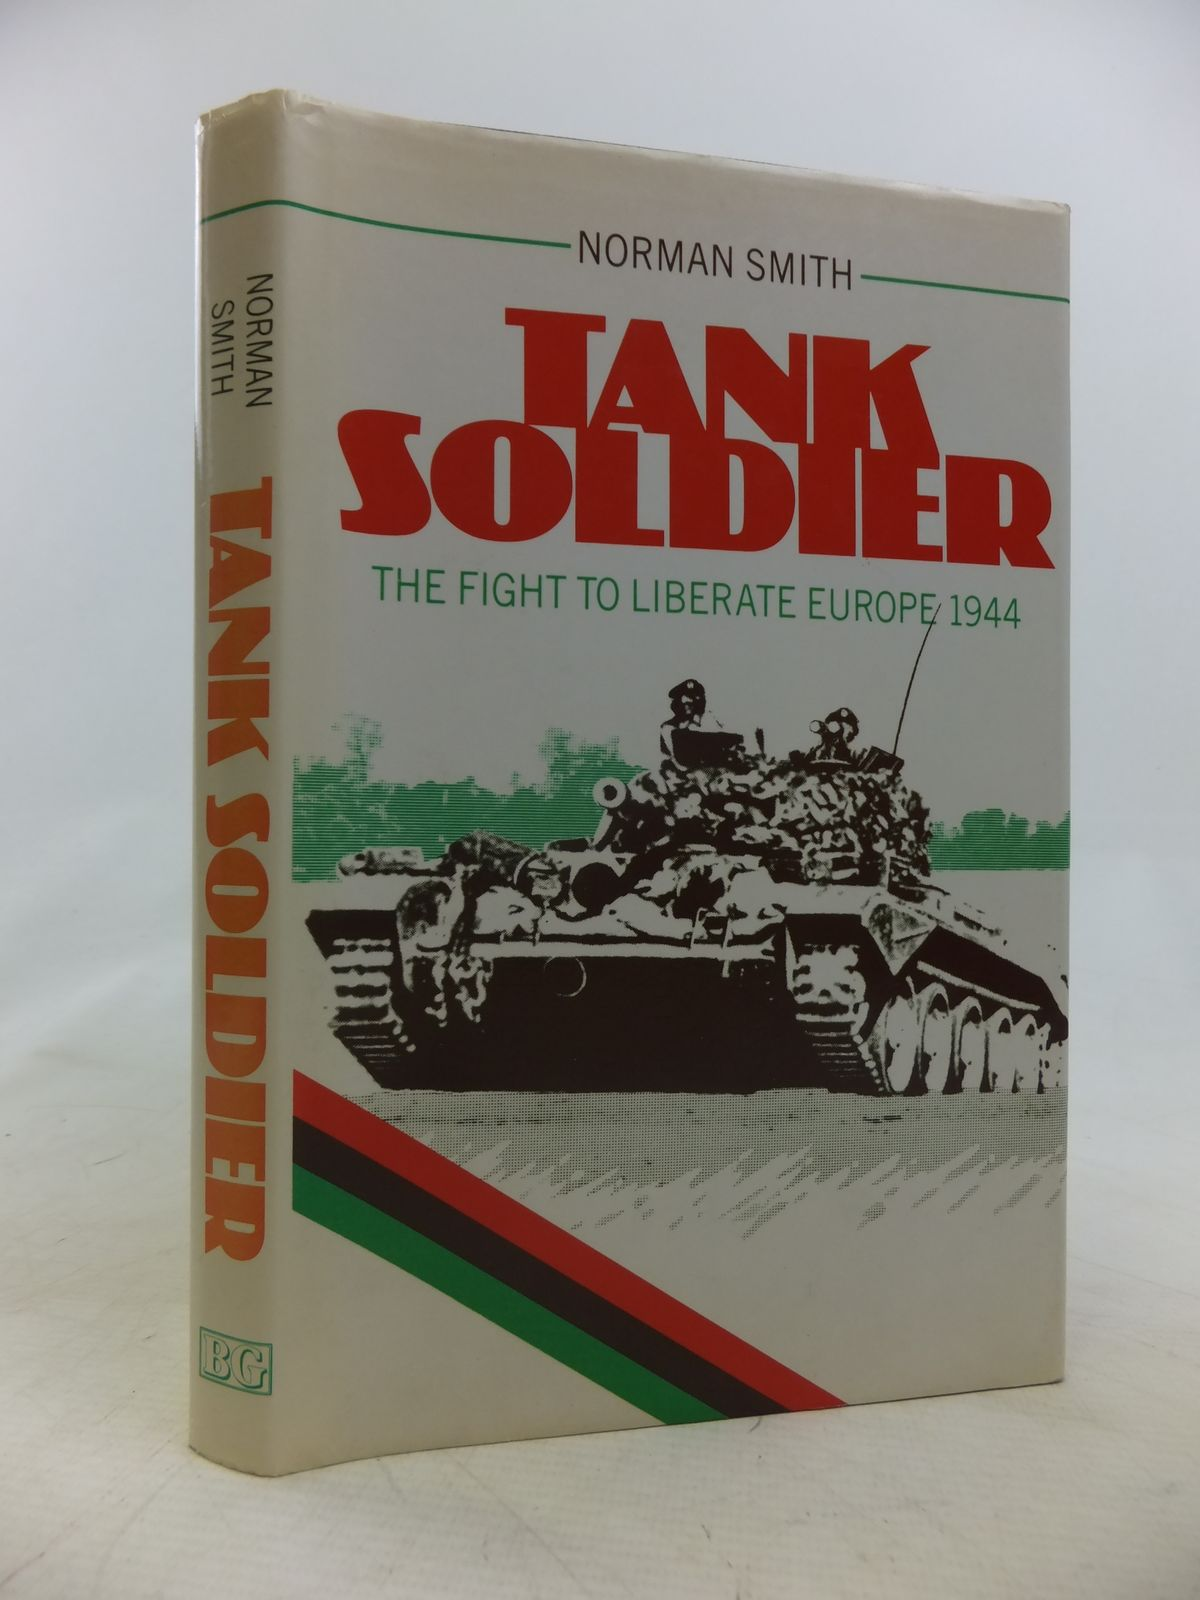 Photo of TANK SOLDIER written by Smith, Norman S. published by The Book Guild Ltd. (STOCK CODE: 1809897)  for sale by Stella & Rose's Books